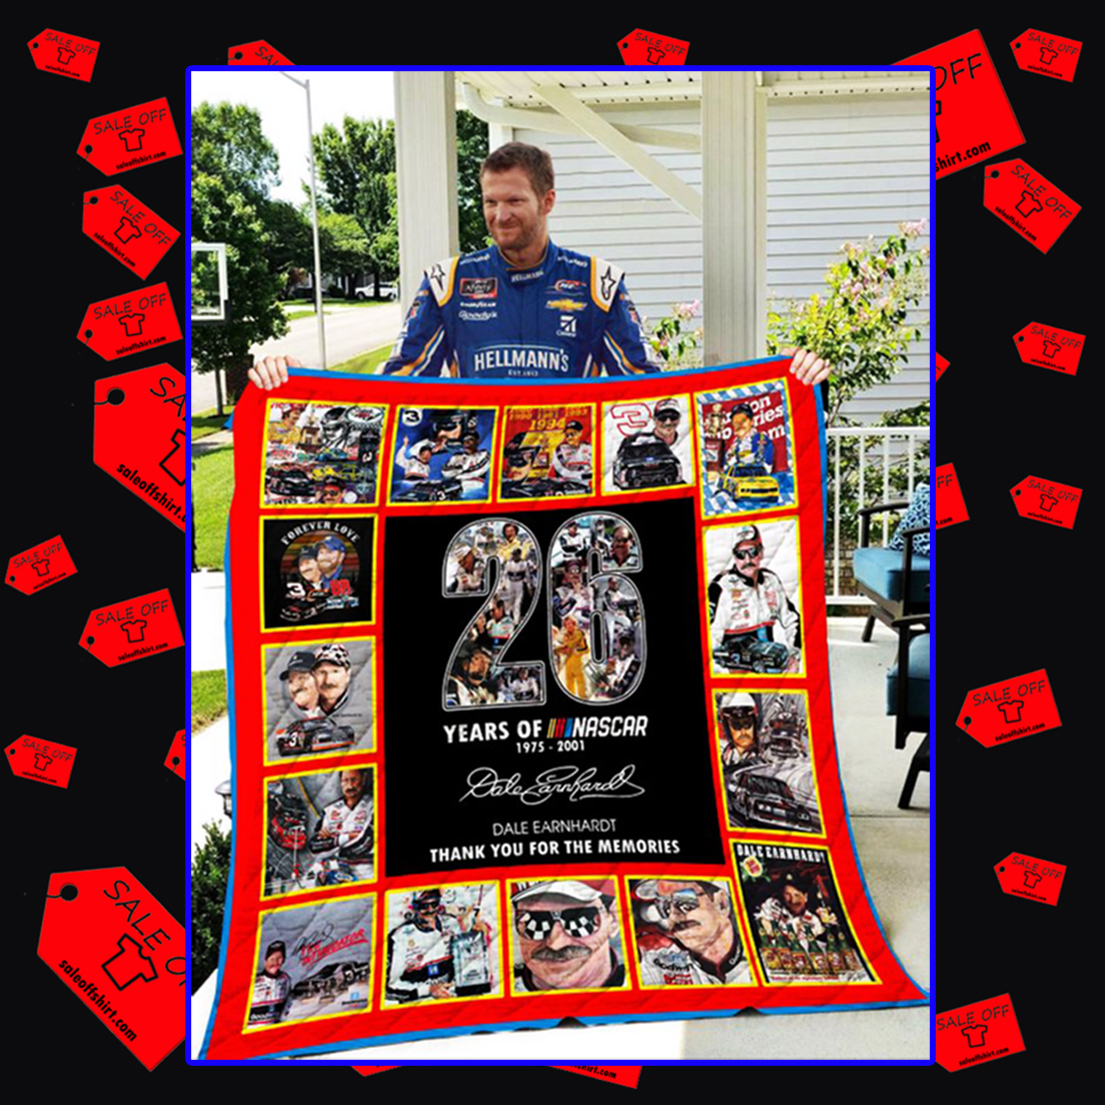 26 years of Nascar thank you for the memories quilt blanket - king